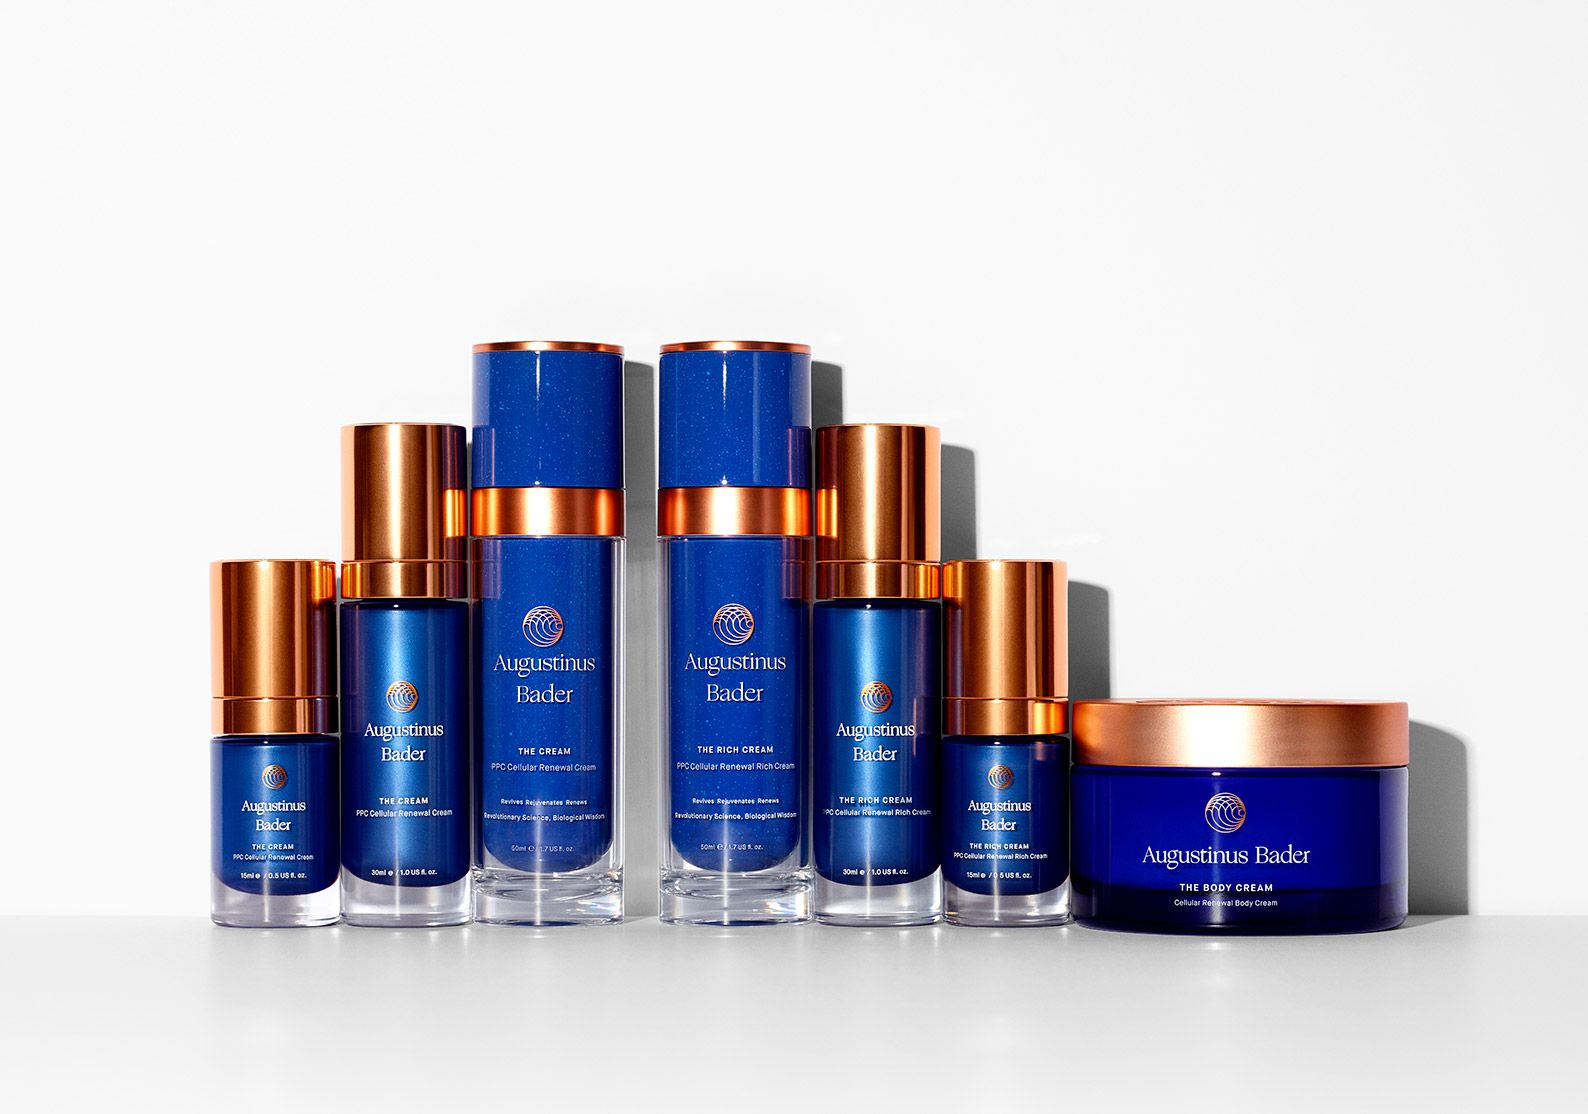 5 Questions With Professor Augustinus Bader, Founder Of Augustinus Bader Skincare